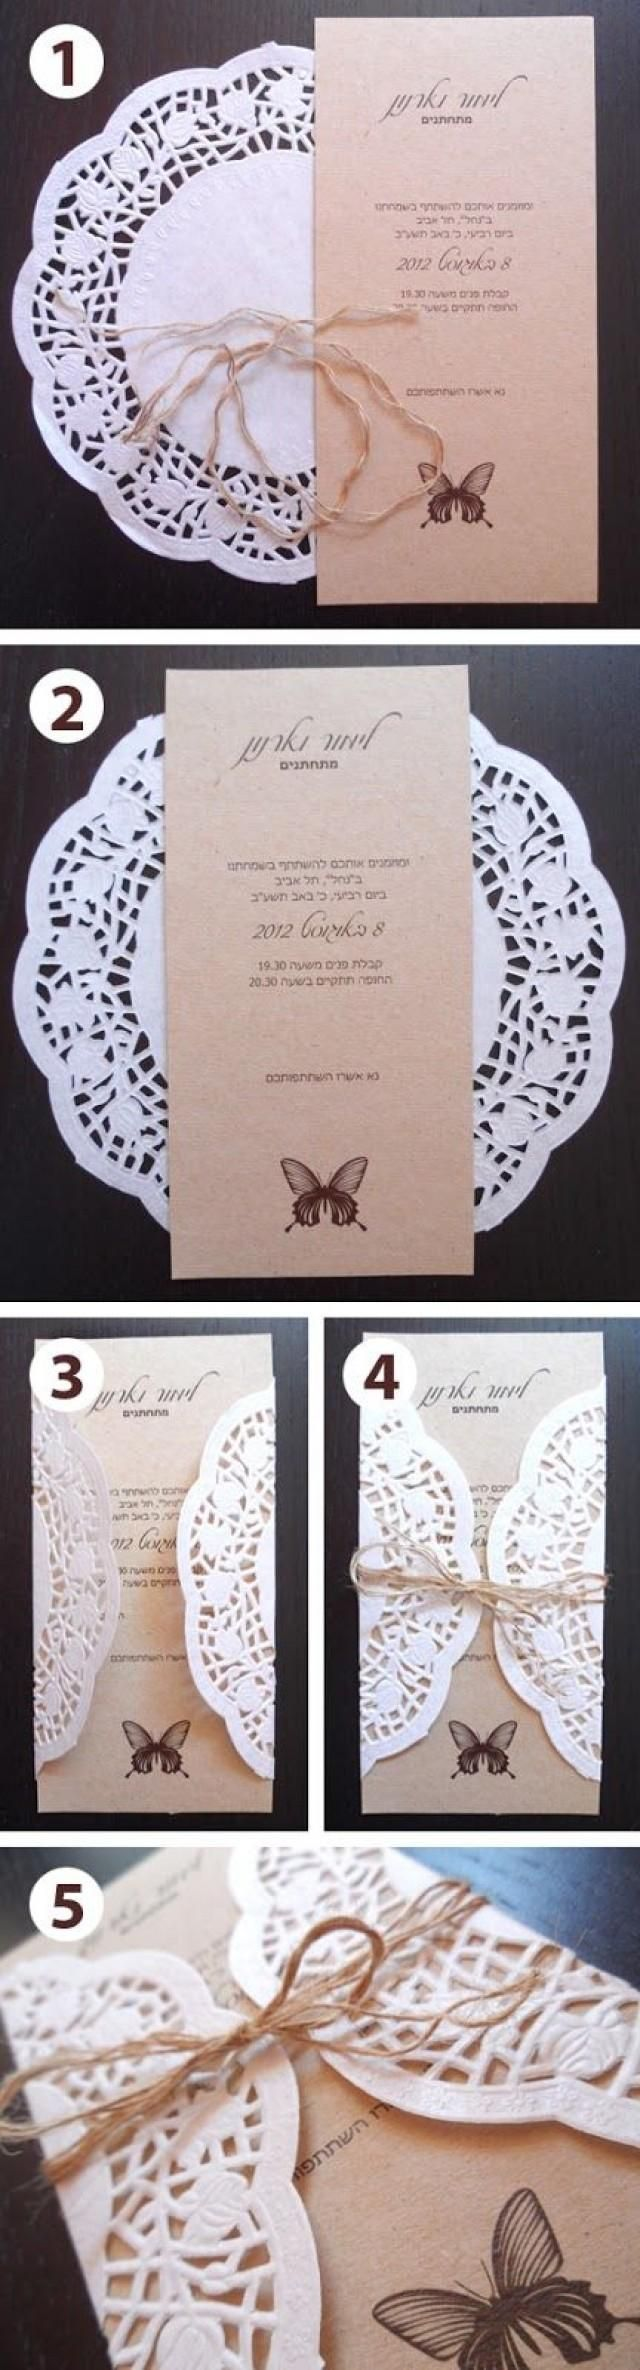 Weddbook is a content discovery engine mostly specialized on wedding concept. You can collect images, videos or articles you discovered  organize them, add your own ideas to your collections and share with other people - this could be a really cute idea for programs doily lace butterfly tutorial